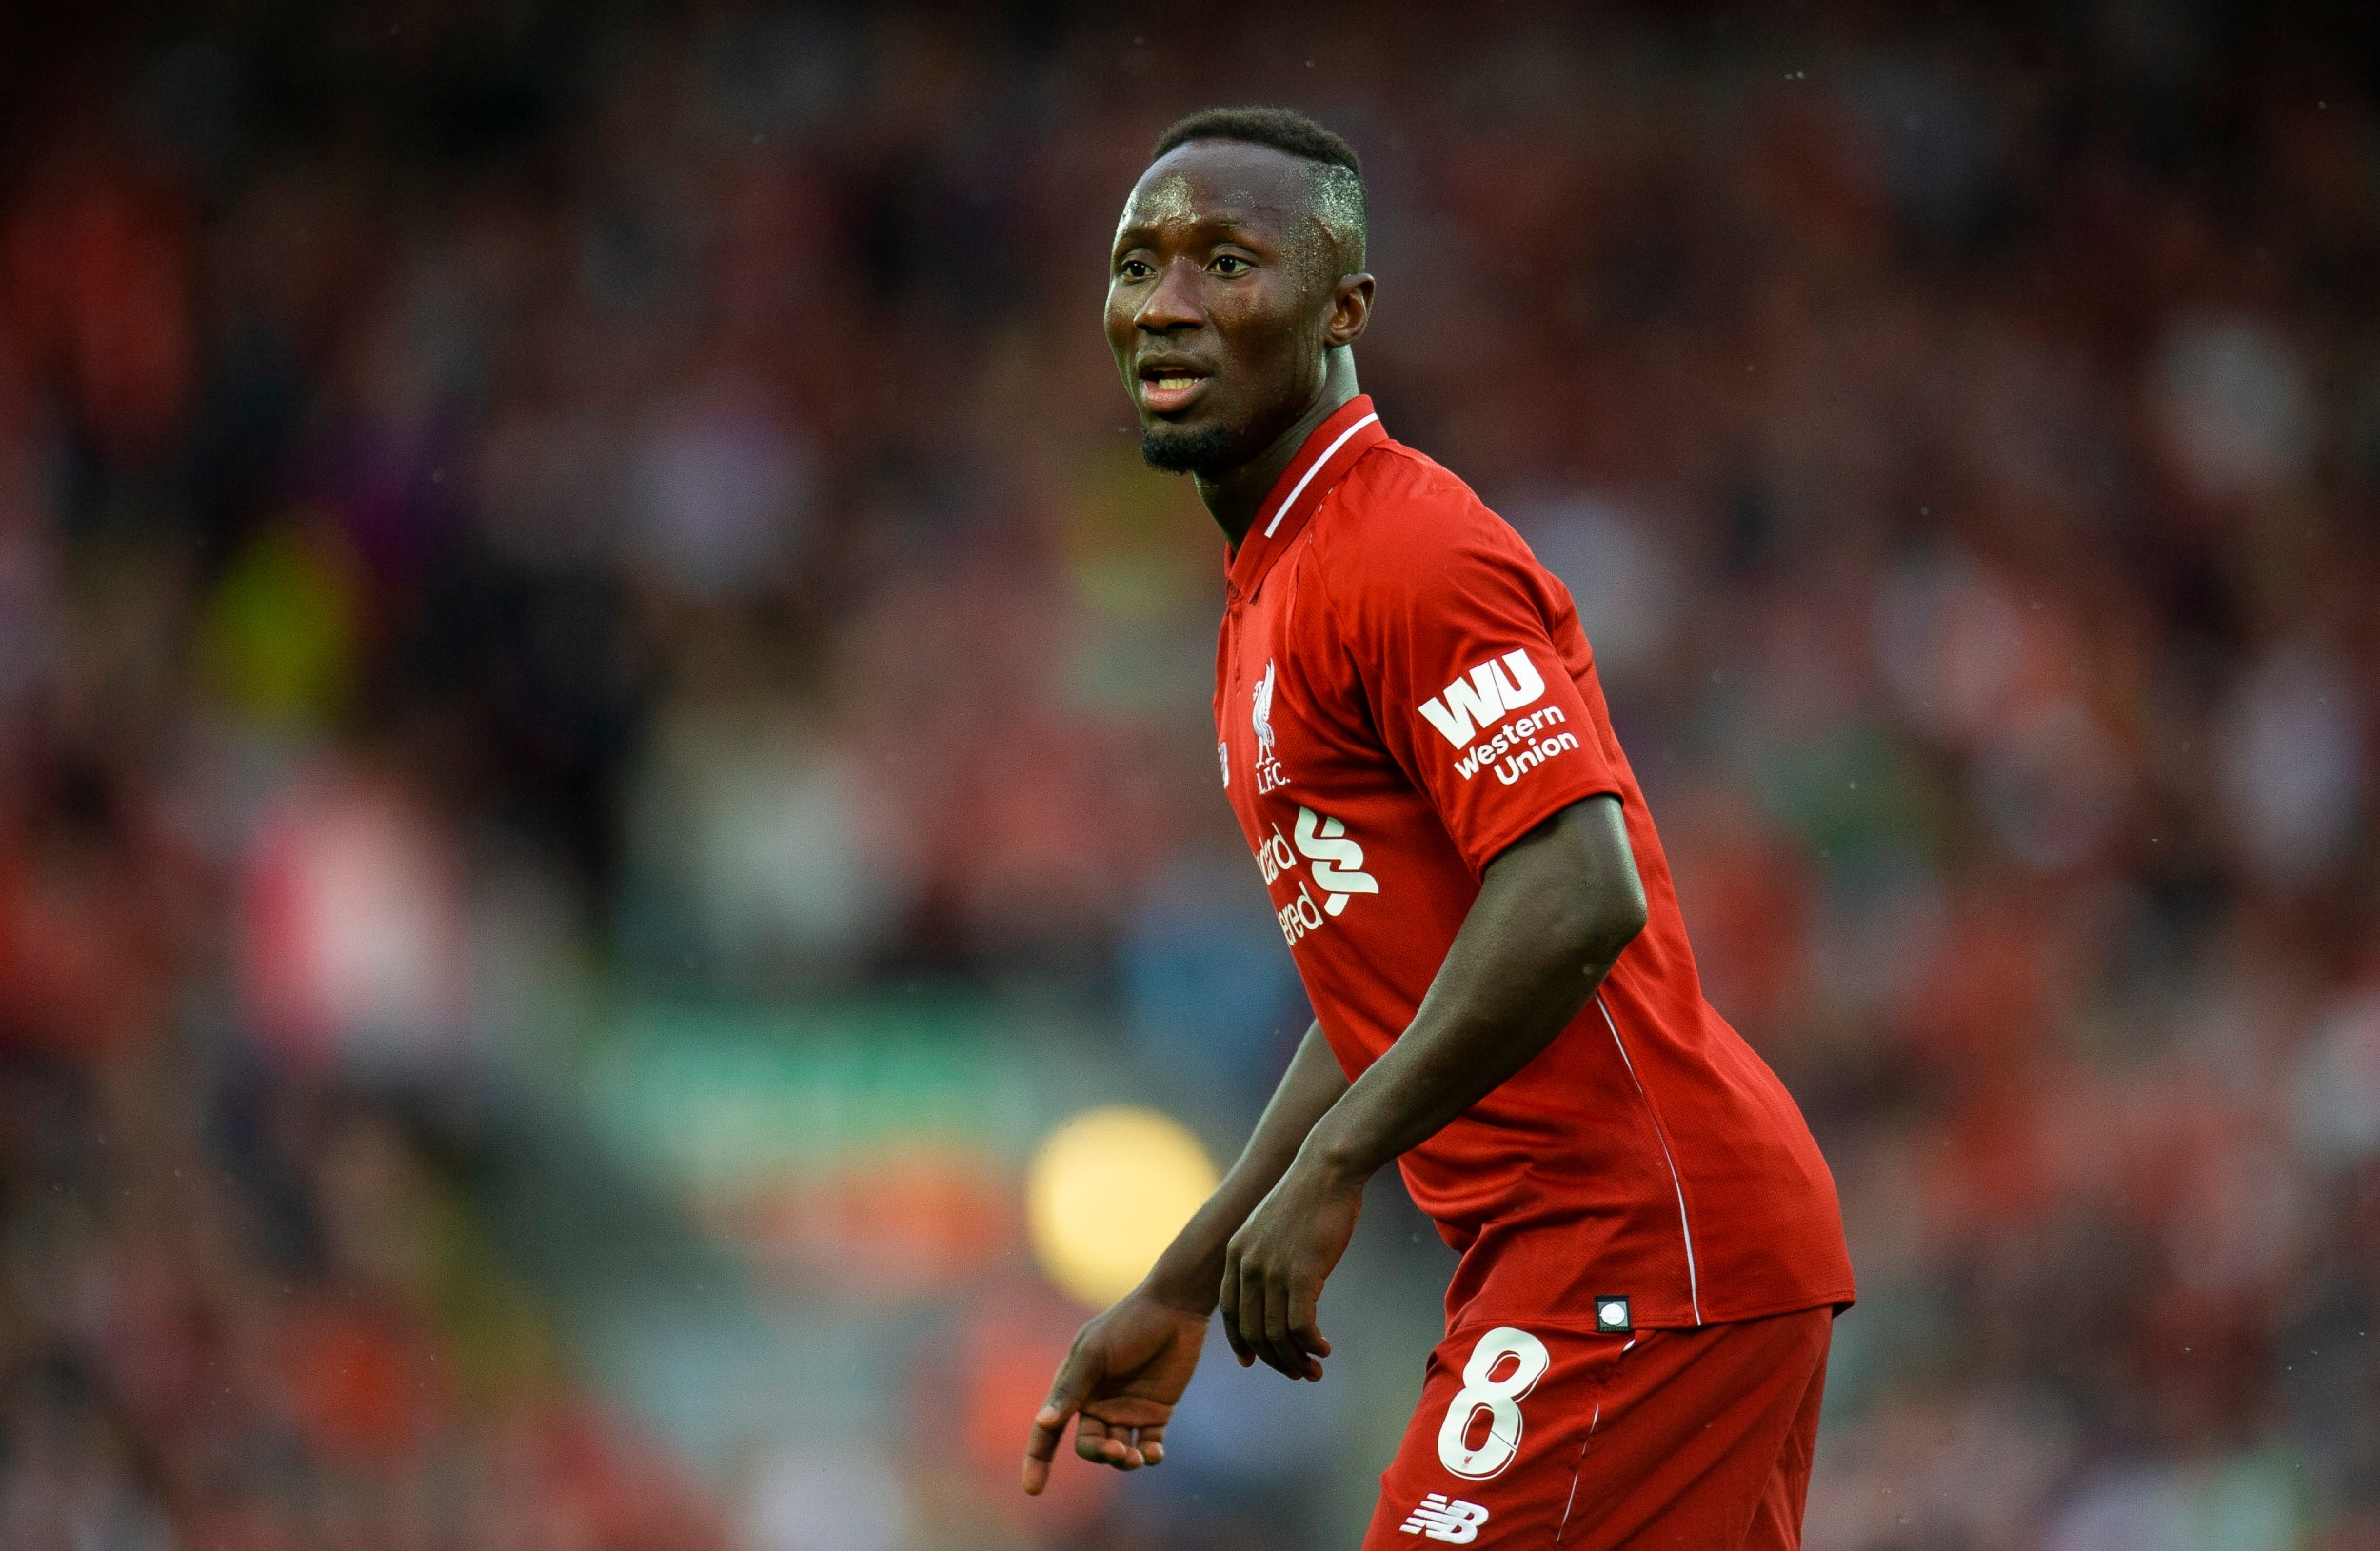 From Naby Keita to Mohamed Salah: How will Liverpool line up this season?